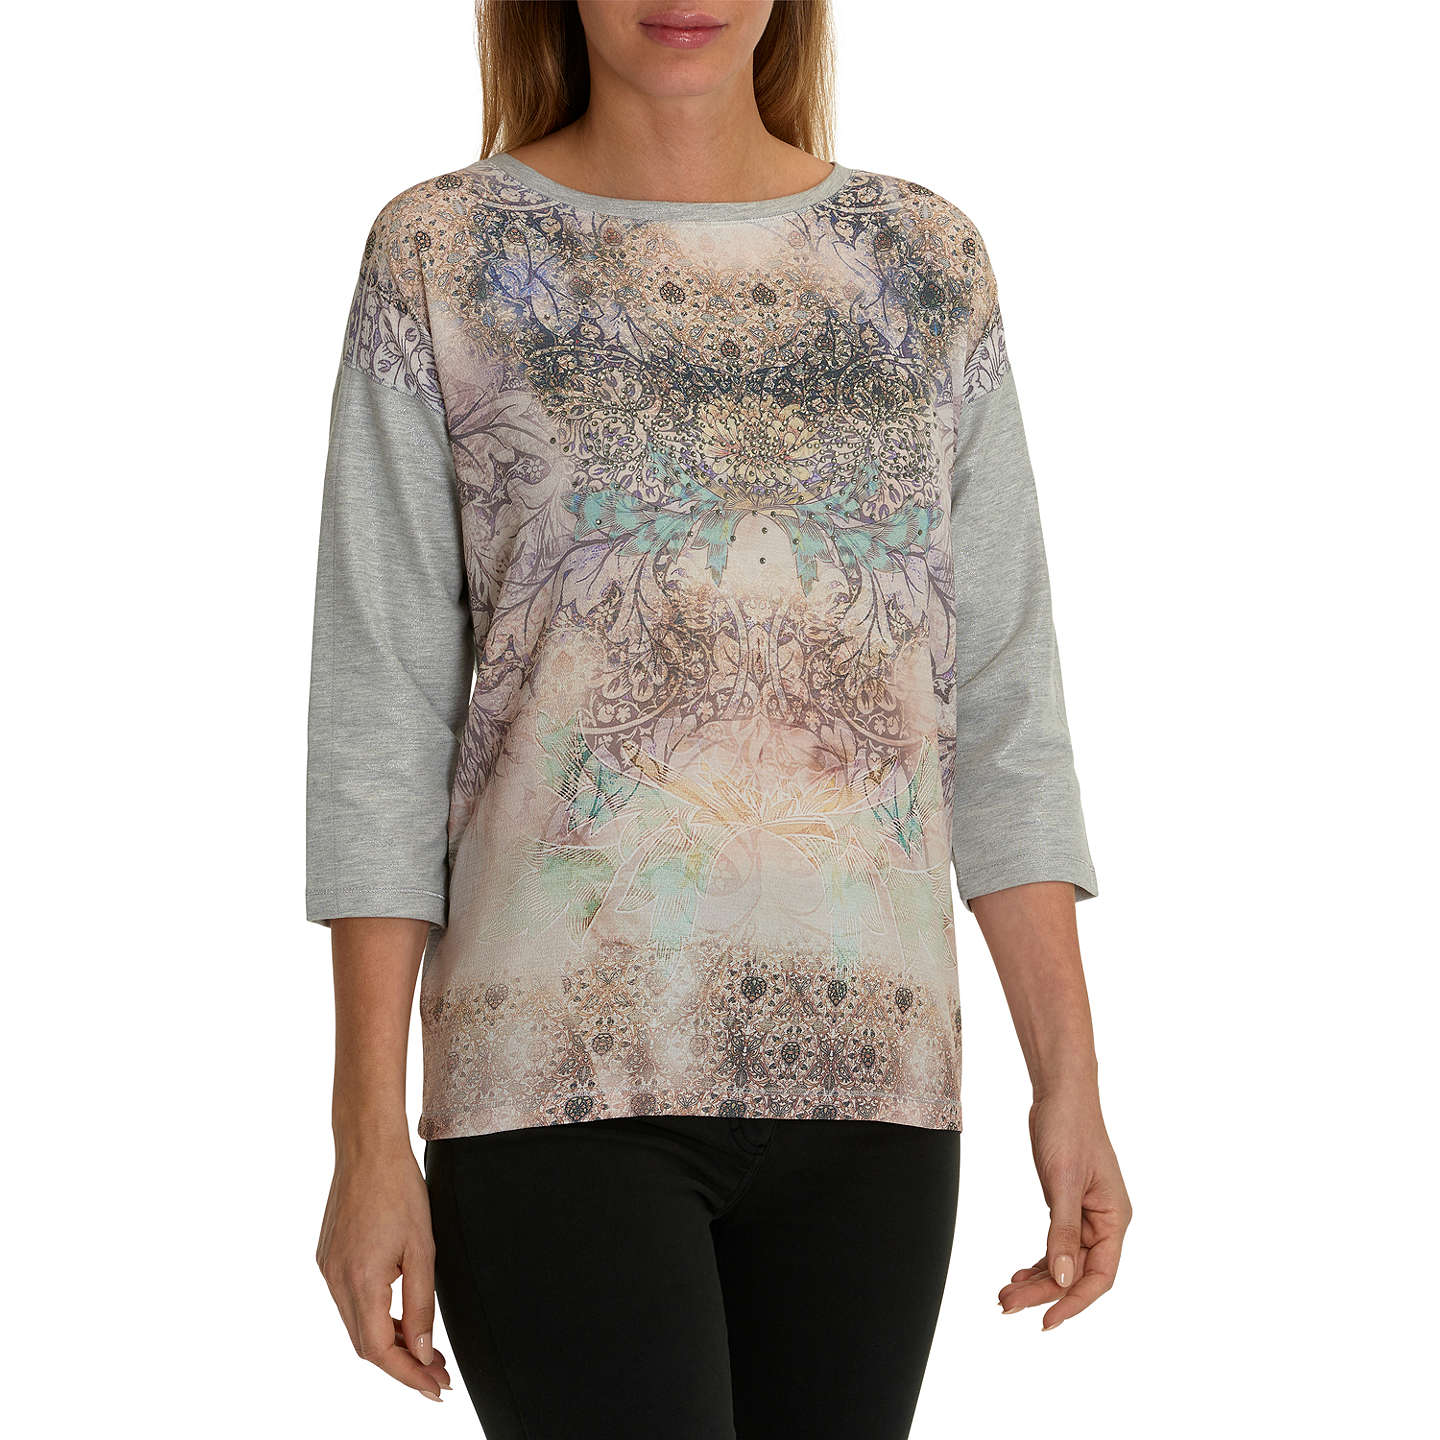 BuyBetty Barclay Embellished Printed Top, Grey/Purple, 8 Online at johnlewis.com